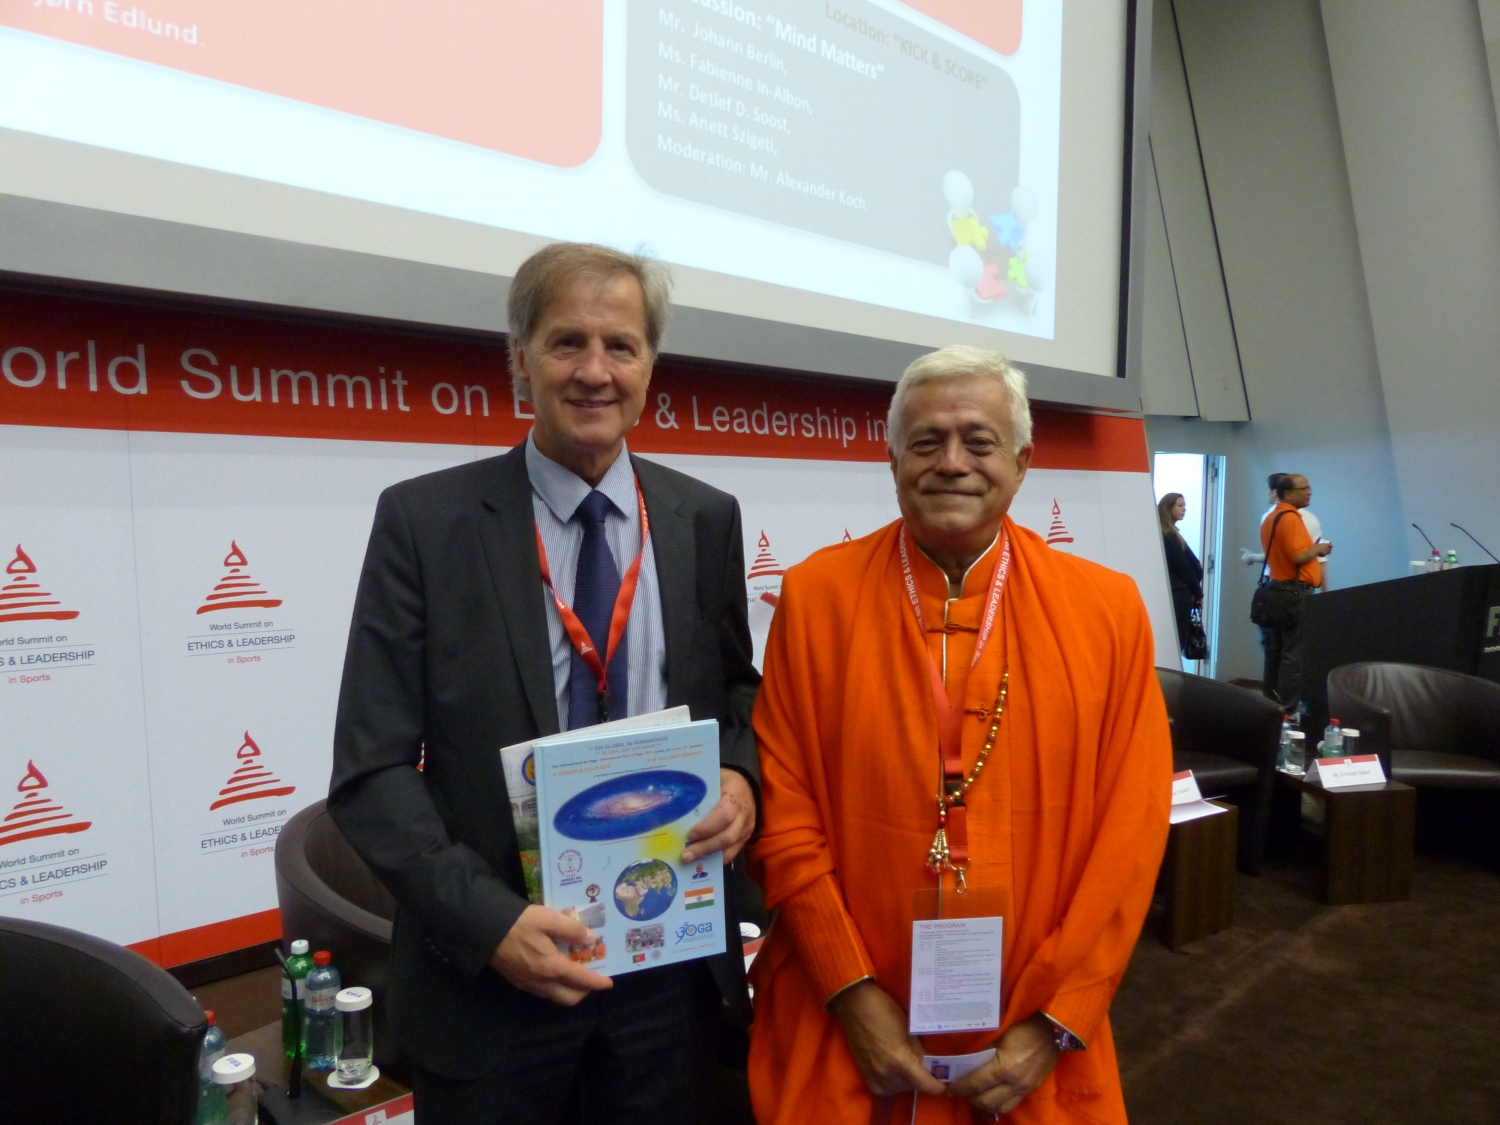 H.H. Jagat Guru Amrta Súryánanda Mahá Rája con Mr. Jo Leinen, Miembro del Parlemento Europeo y Miembro del Board of the World Forum for Ethics in Business